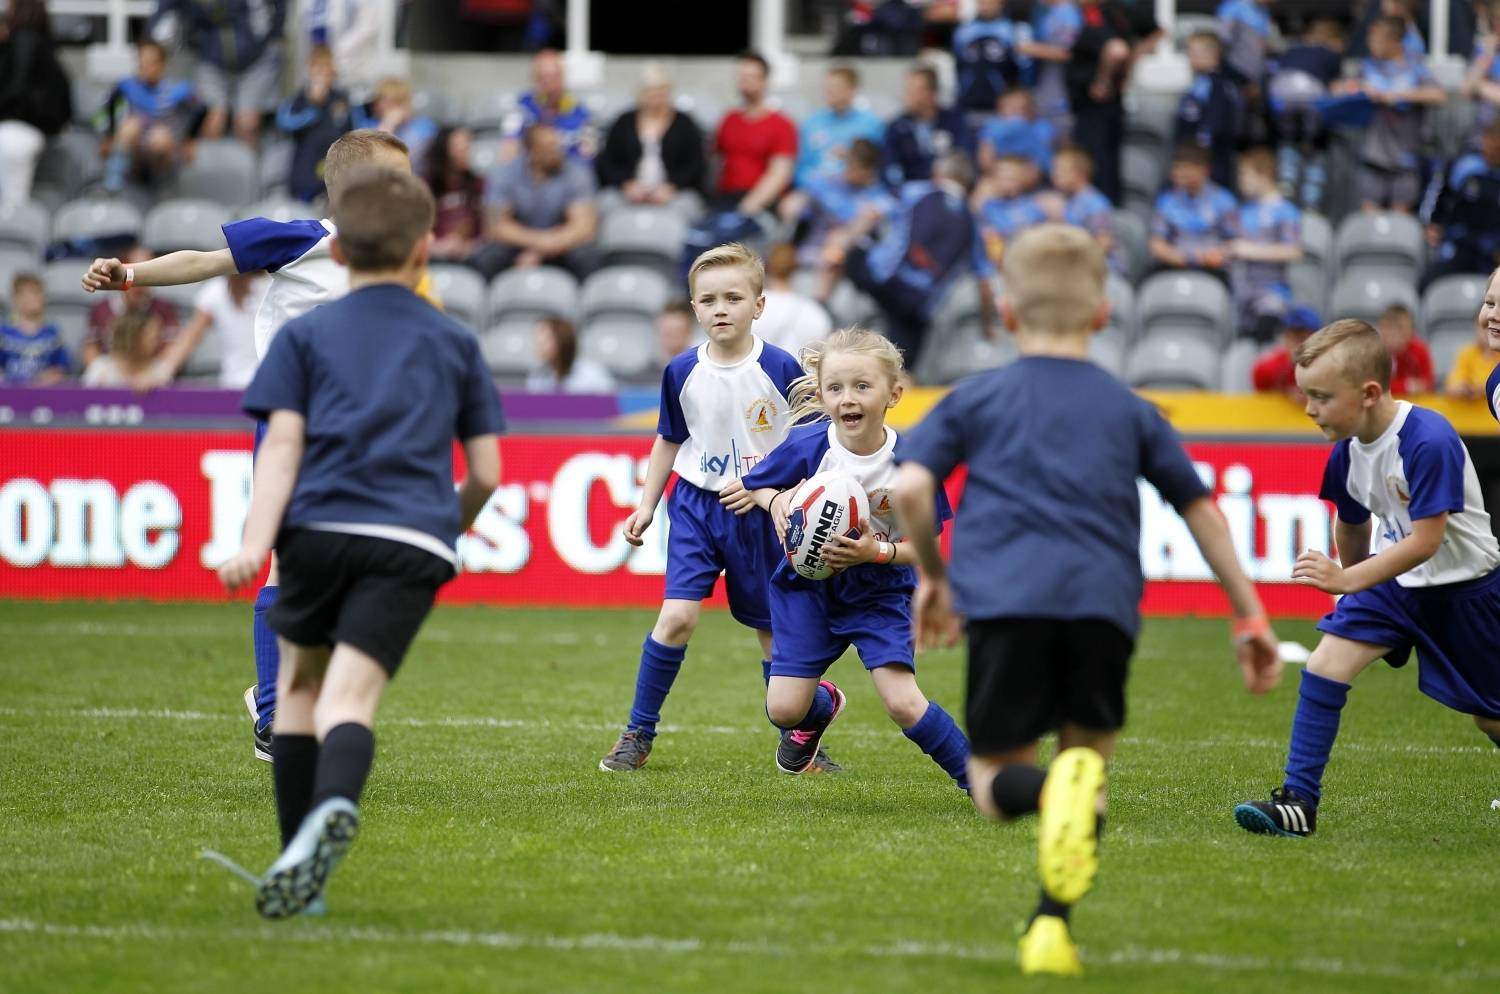 Newcastle Thunder reach over 700 children in 2016 with Sky Try